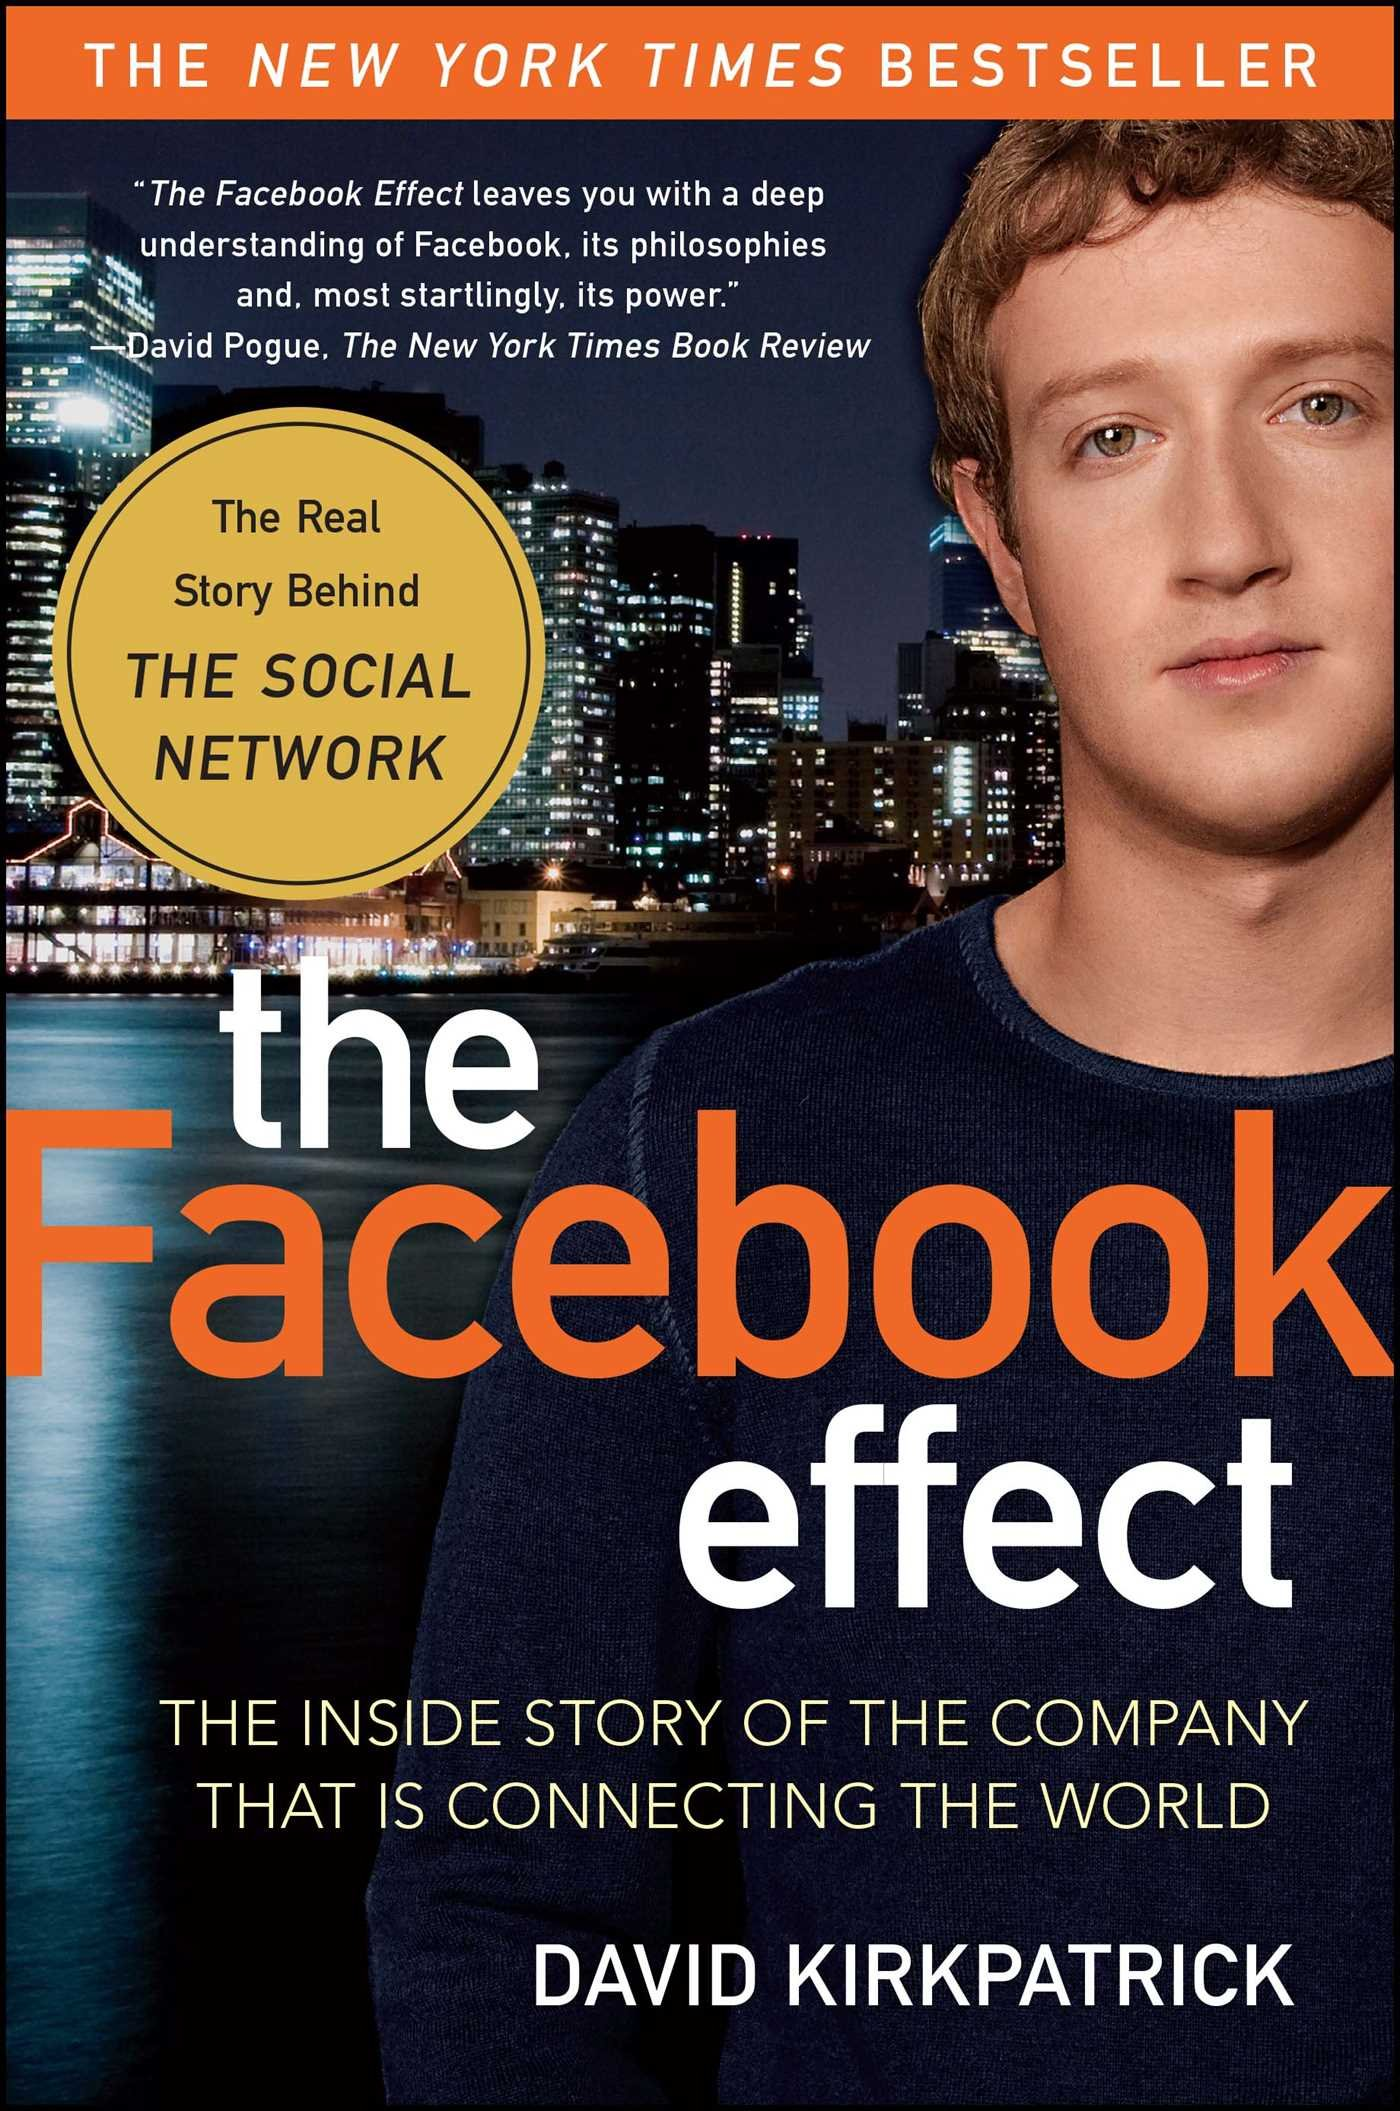 The Facebook Effect Summary